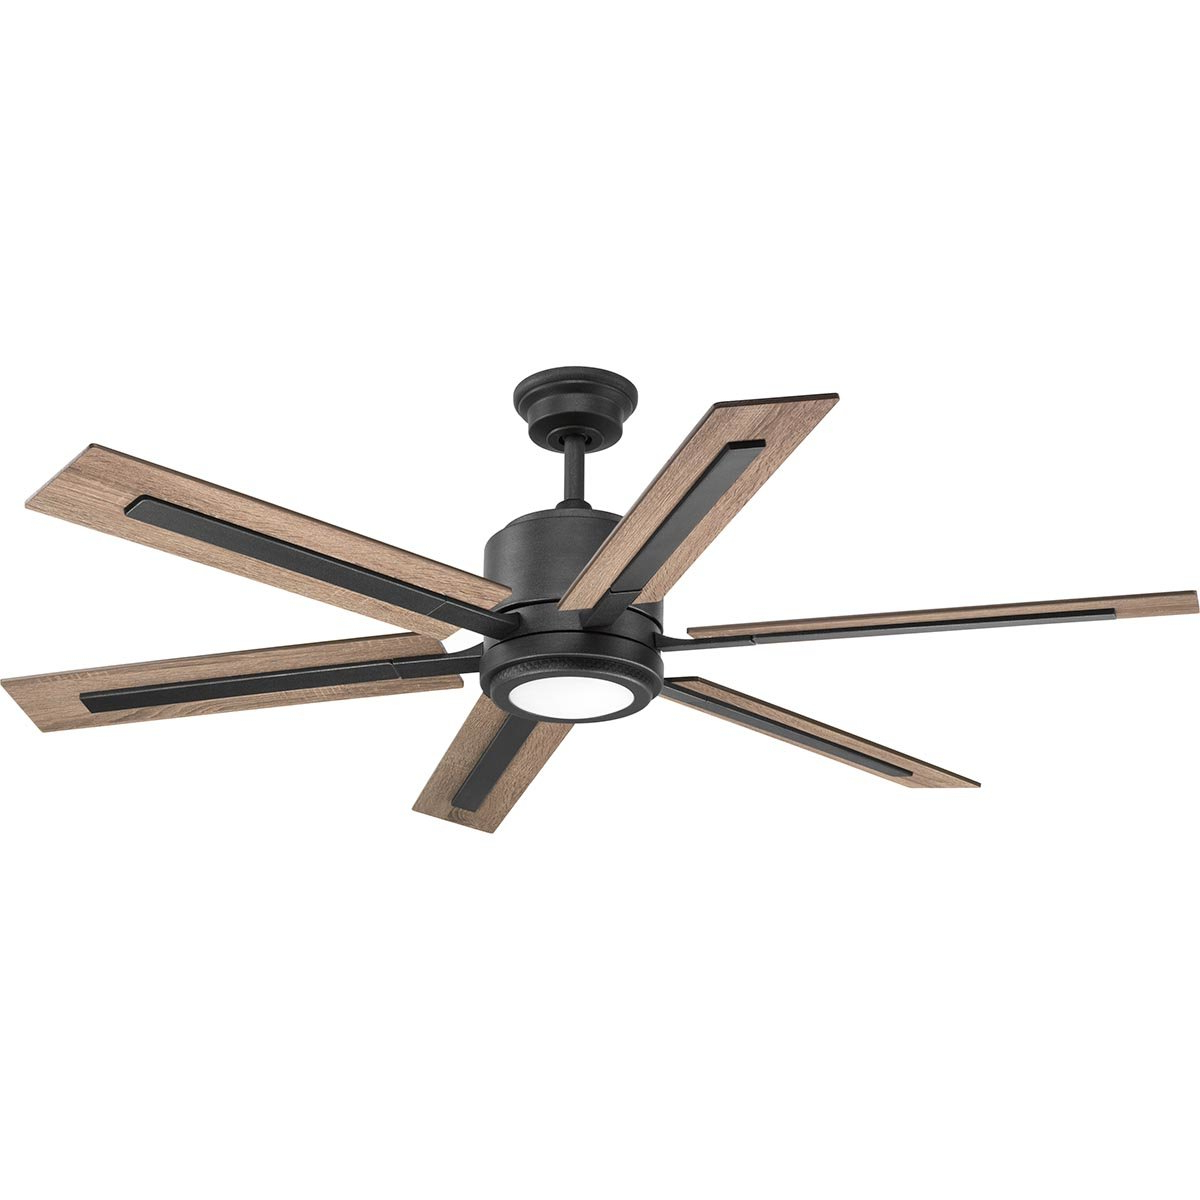 "Crestfield 5 Blade Led Ceiling Fans With Regard To Trendy 60"" Lesure 6 Blade Led Ceiling Fan With Remote, Light Kit Included (View 6 of 20)"